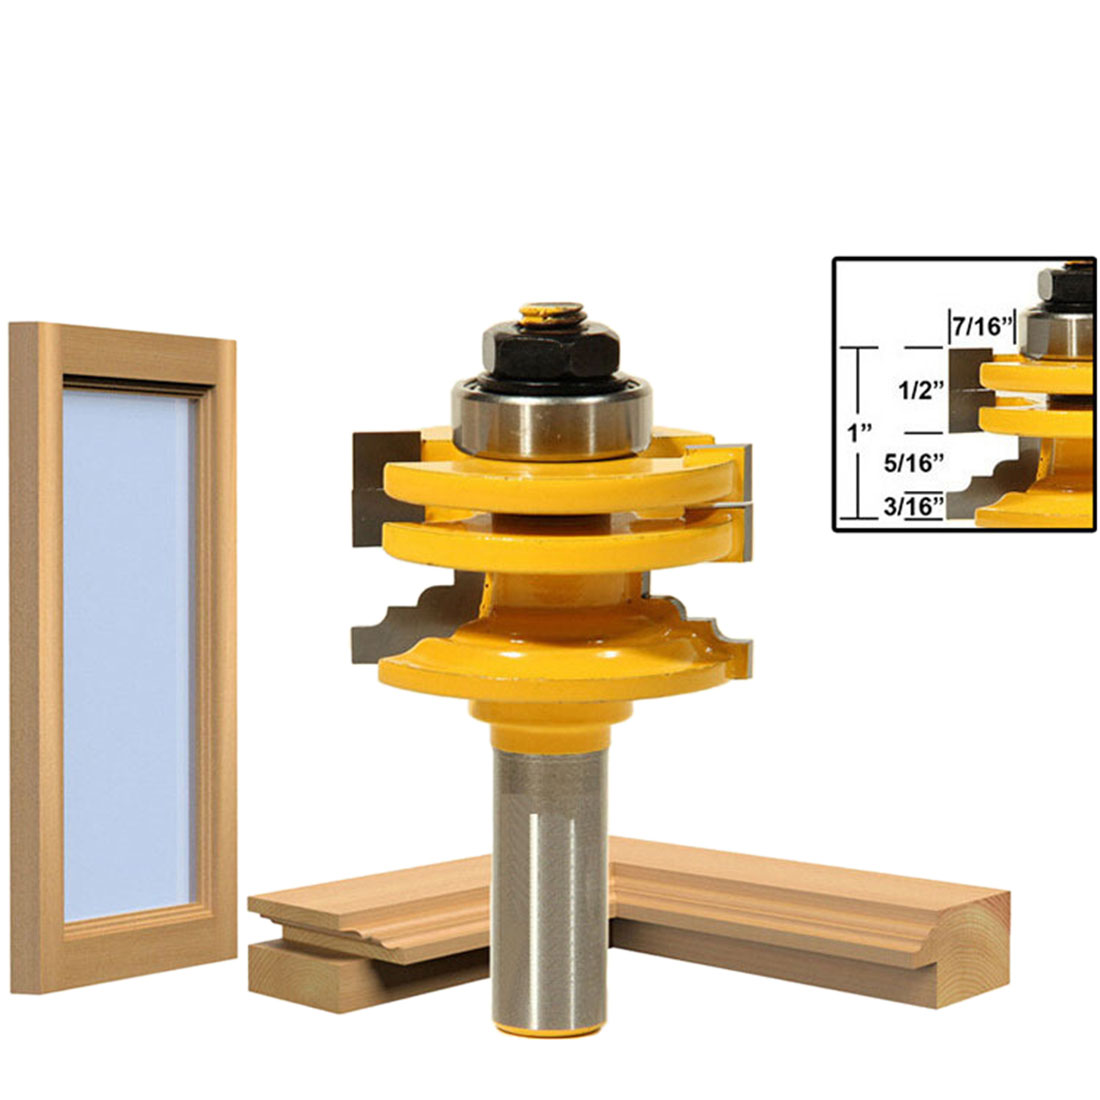 1/2 Inch Carbide Shank Carving Wood Milling Cutter Window Frame Glass Door Router Bit Mill Woodworking Trimming Tools